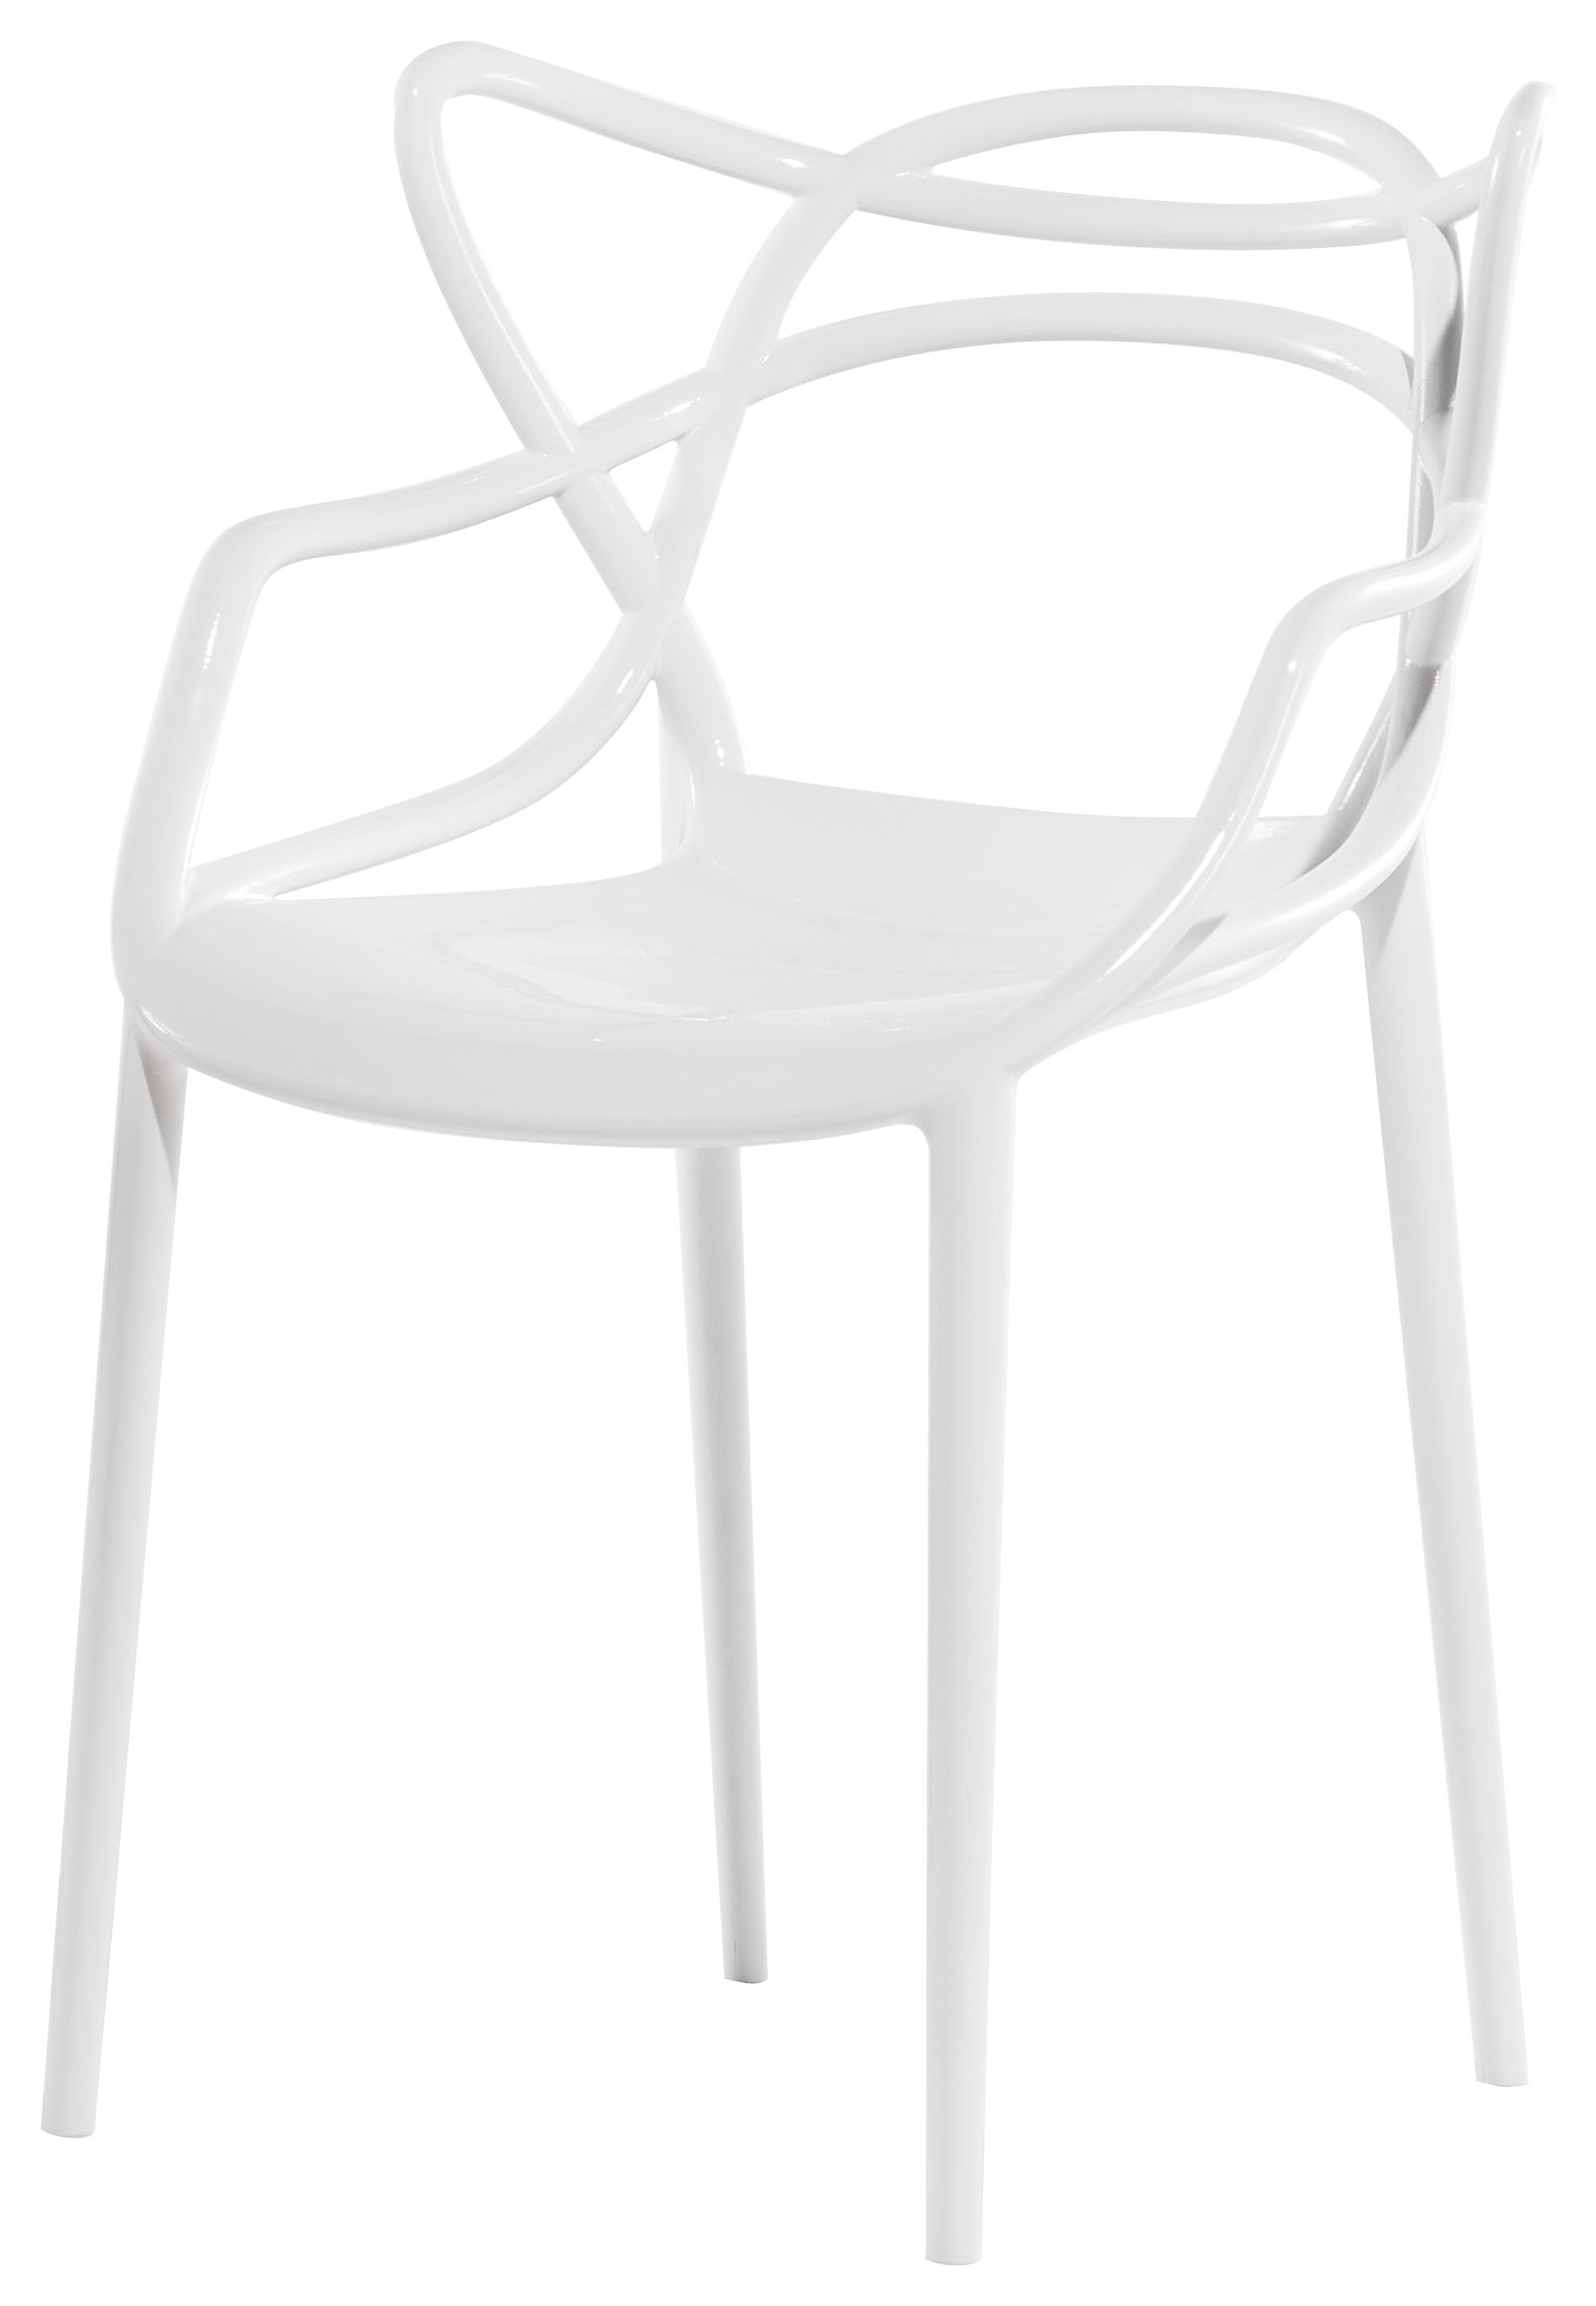 Furniture - Chairs - Masters Stackable armchair - / Plastic by Kartell - White - Polypropylene